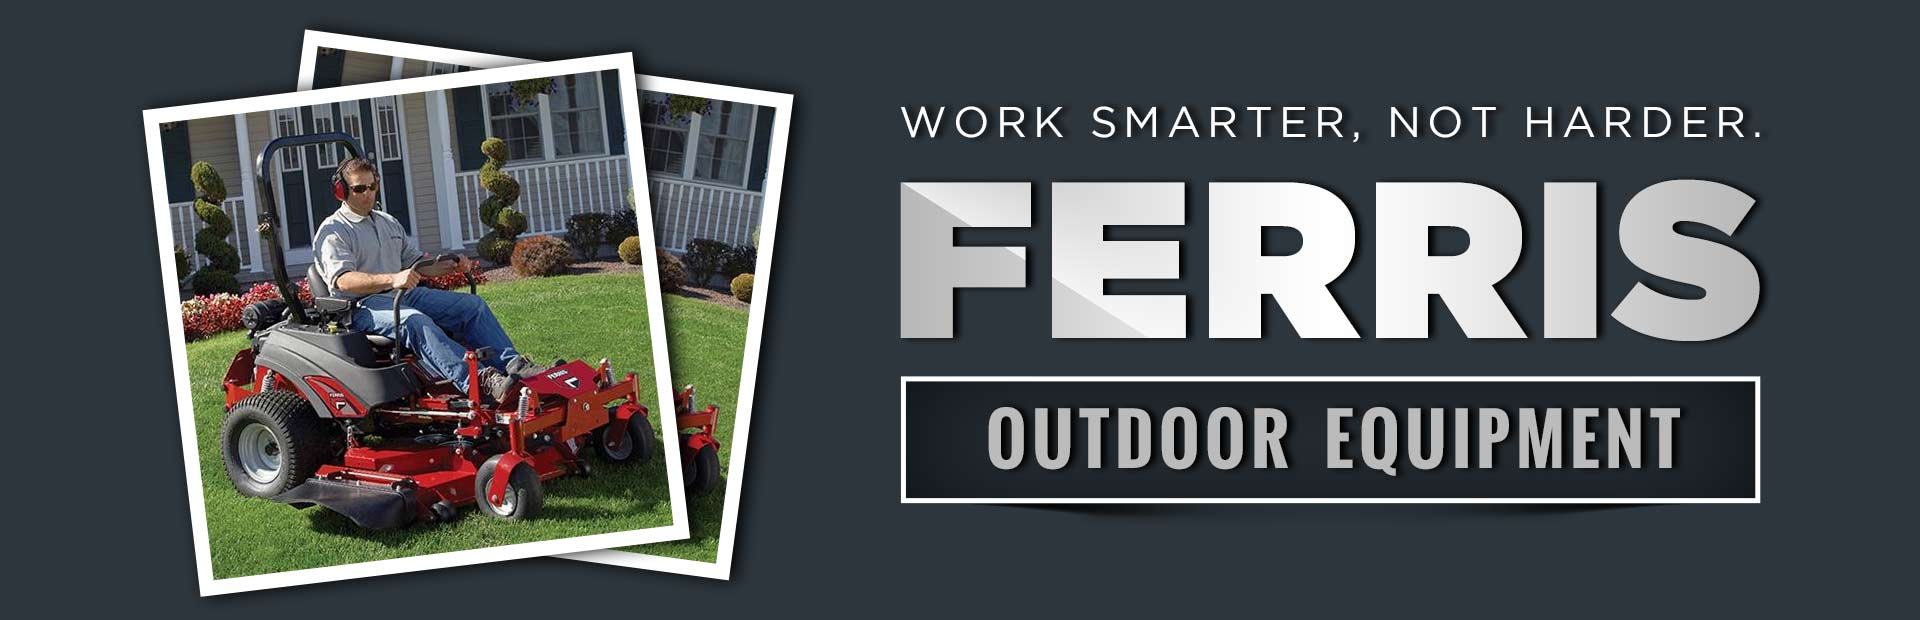 Ferris Outdoor Equipment: Click here to view the models.